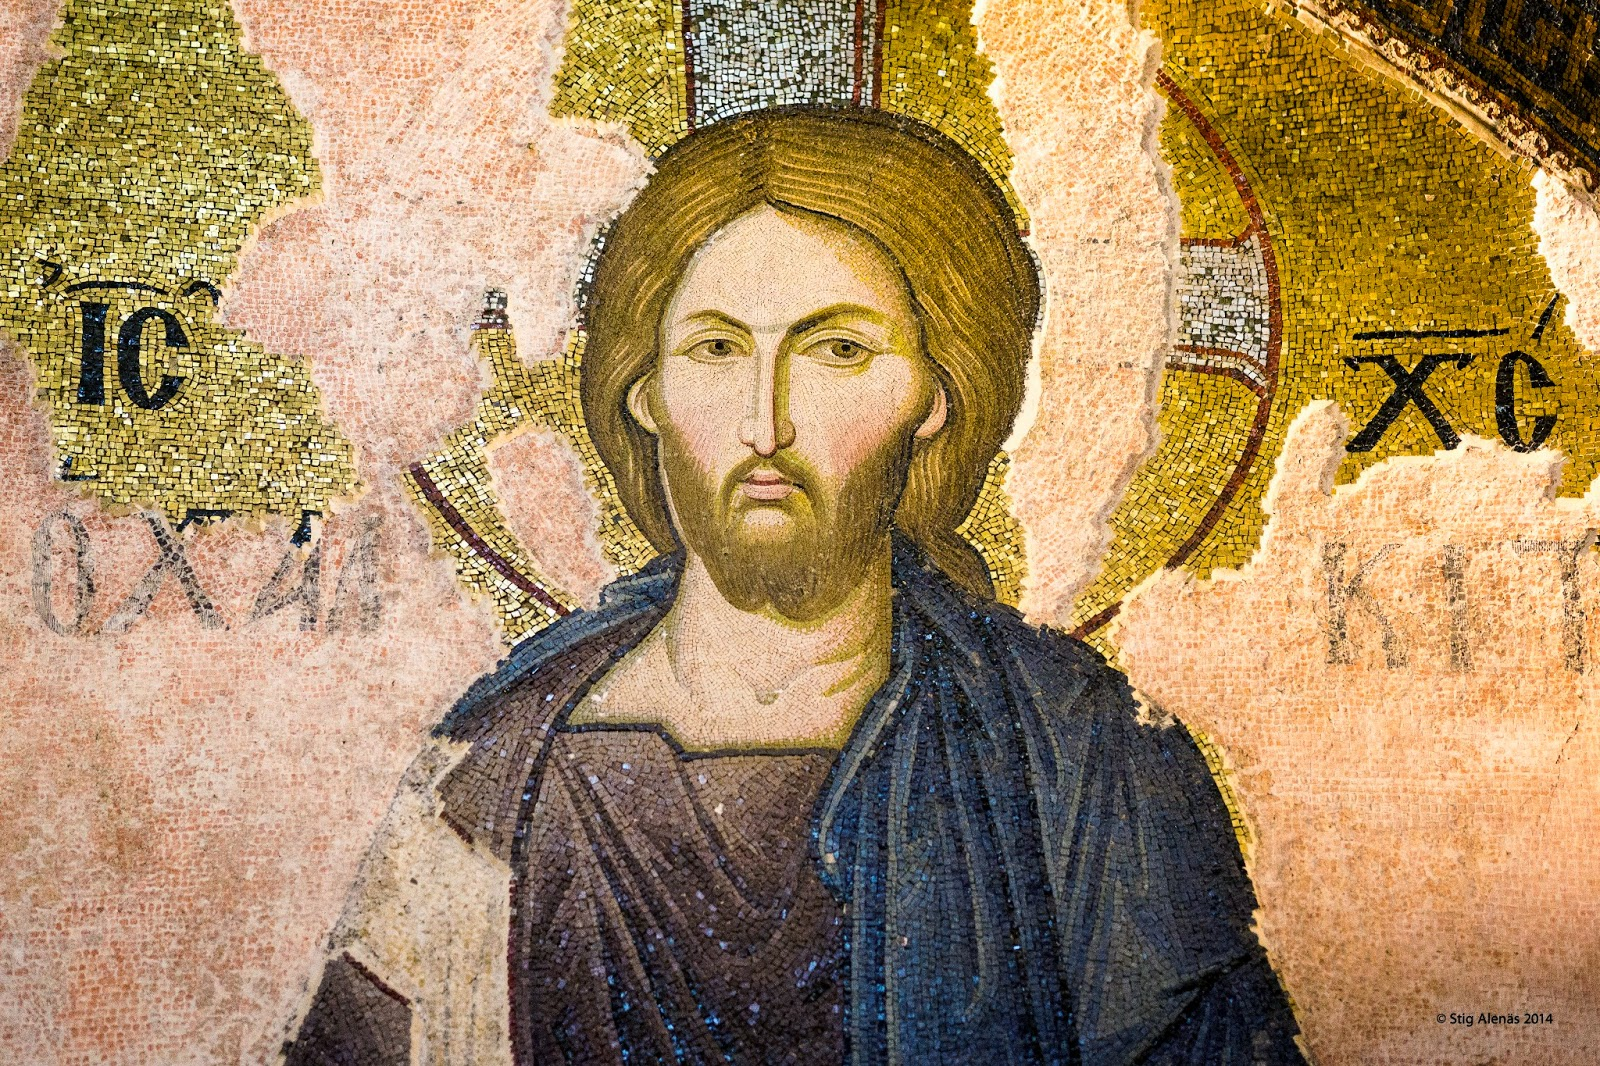 church, turkey, heritage, architecture, travel, interior, mosaic, christ, holy, istanbul, religion, art, ancient, byzantine, byzantium, constantinople, old, jesus, christianity, editorial, museum, camii, kariye, pantocrator, chora, https://www.shutterstock.com/image-photo/mosaic-christ-pantocrator-chora-church-istanbul-533935273